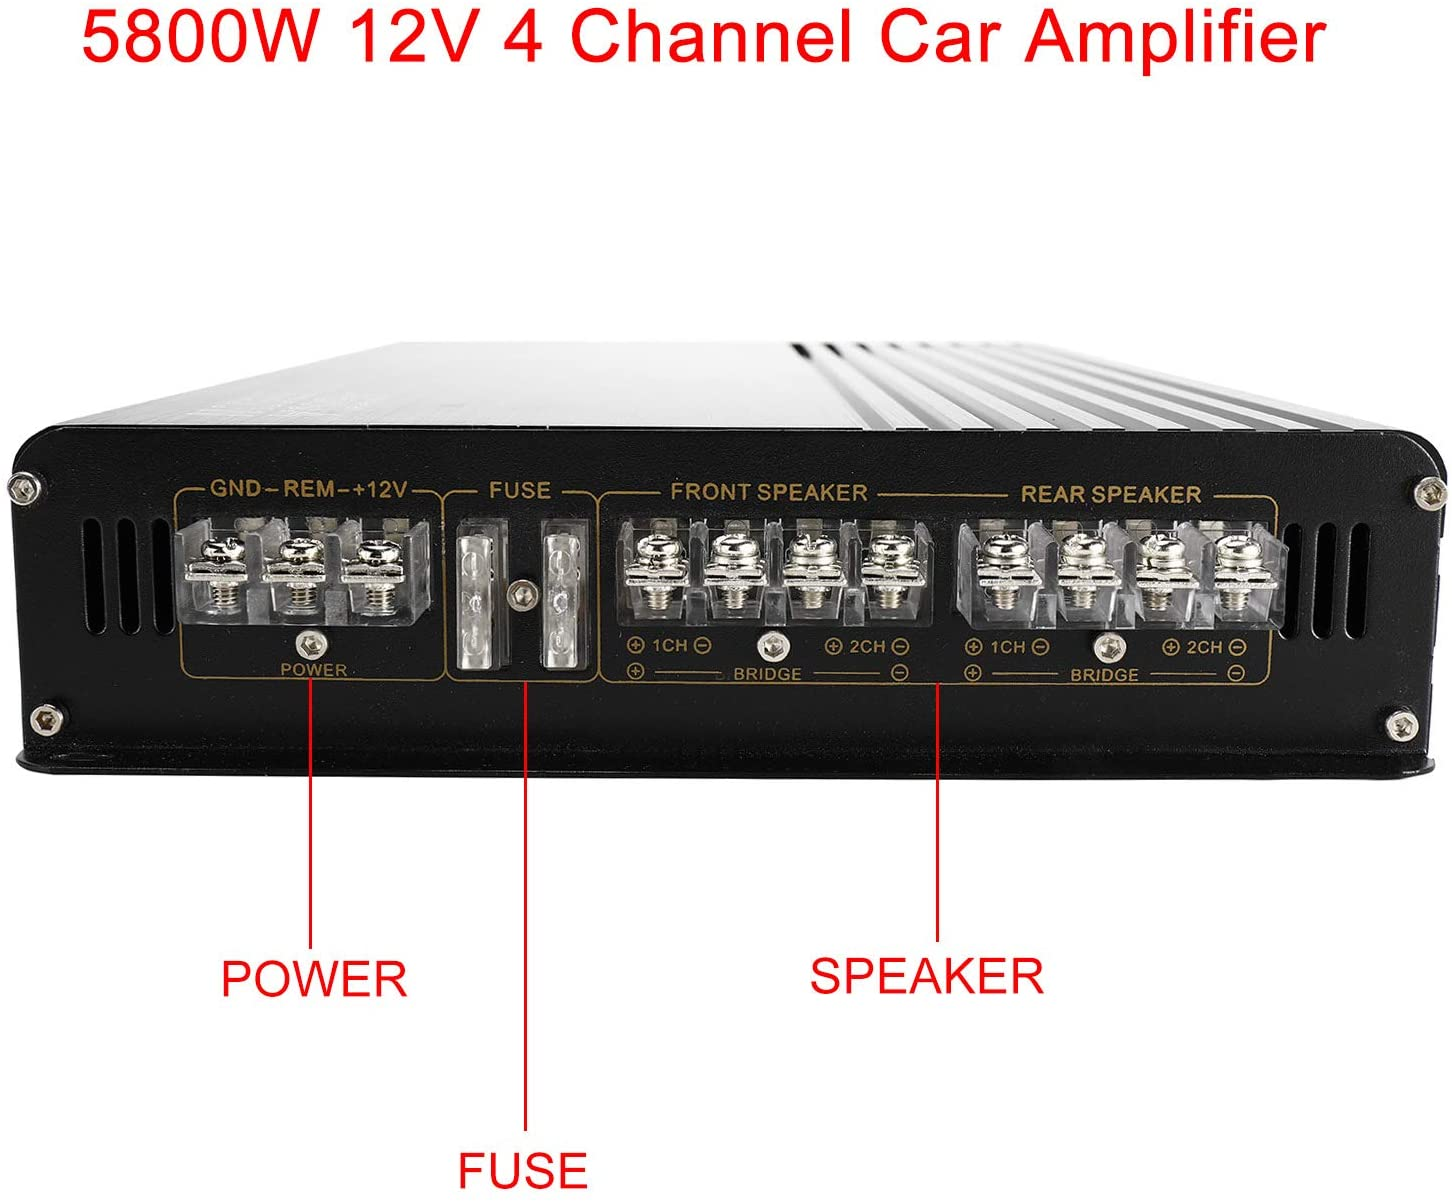 YaeCCC 5800W 12V 4 Channel Car Amplifier Stereo Audio Super Bass Power Subwoofer Amp